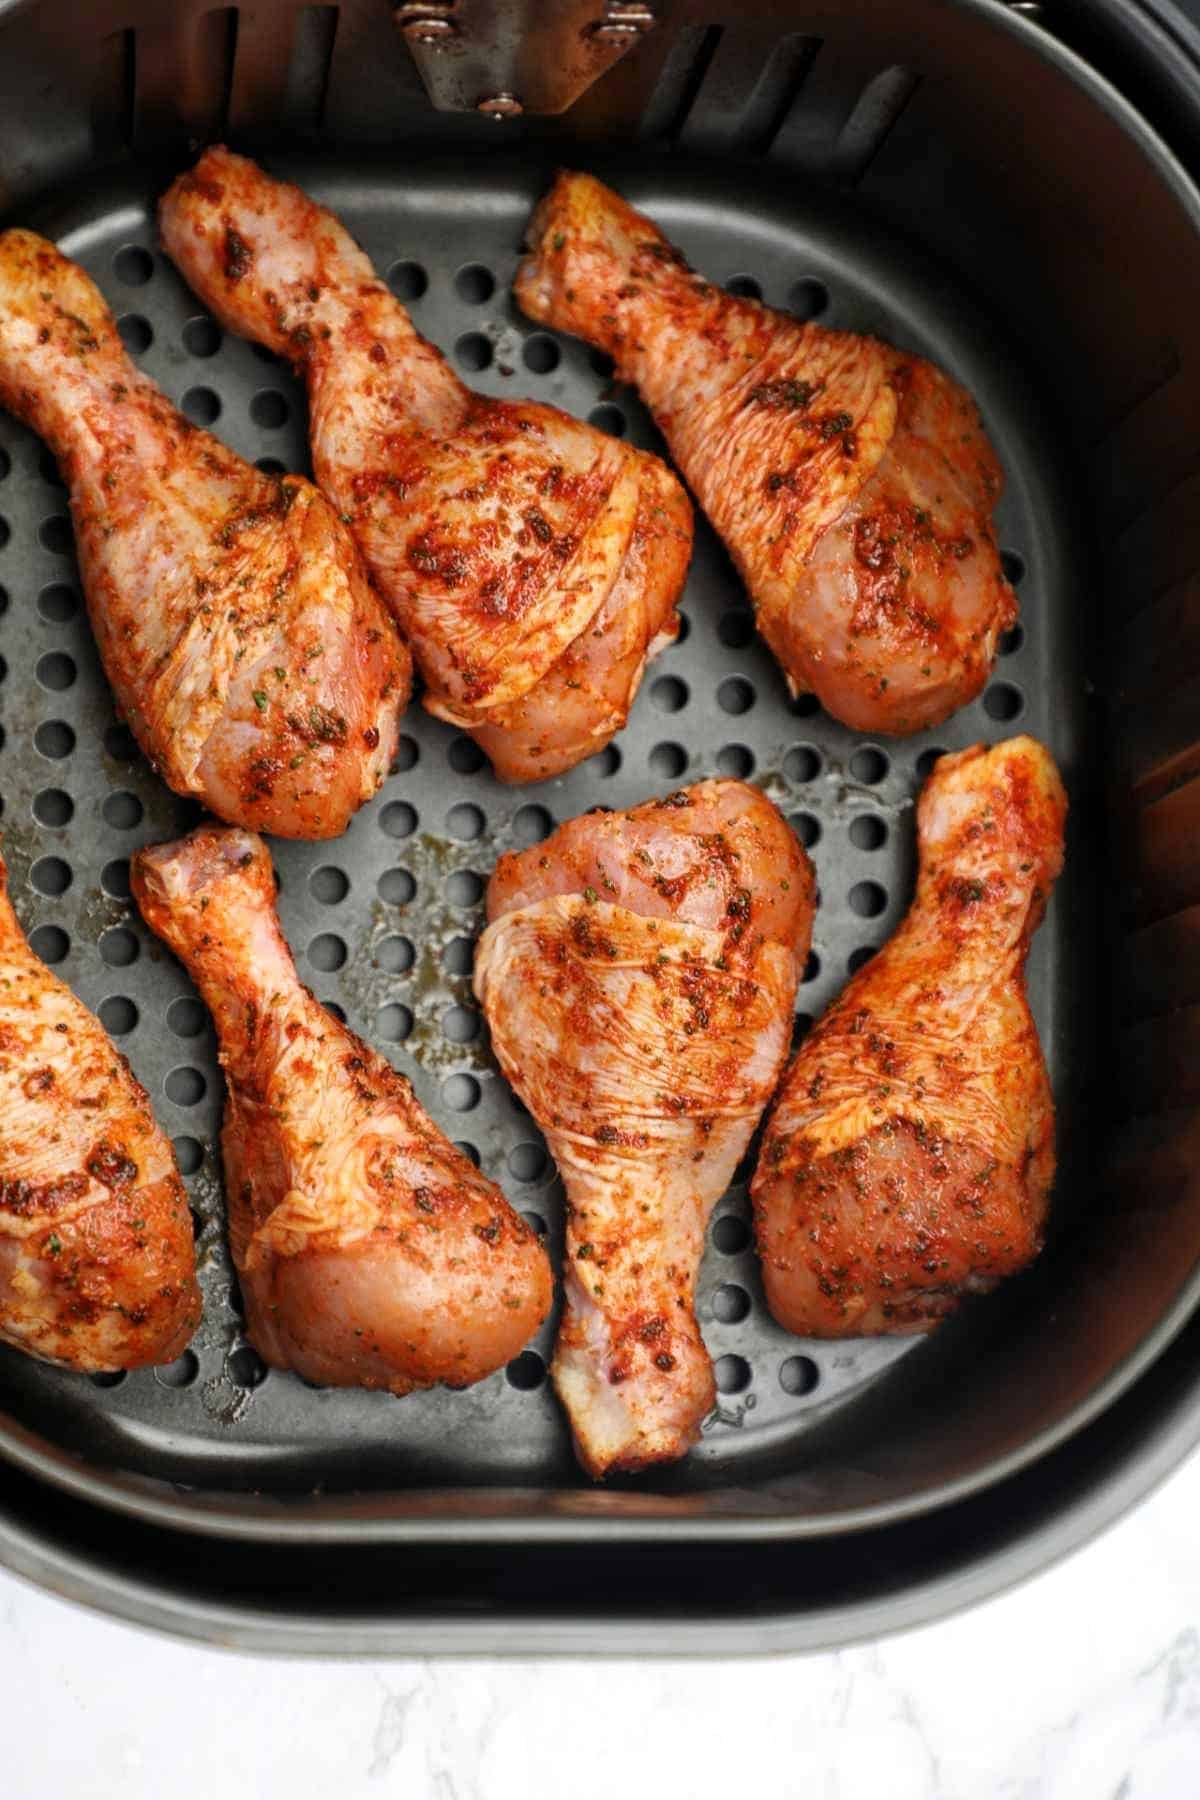 the marinated drumsticks in the air fryer basket.